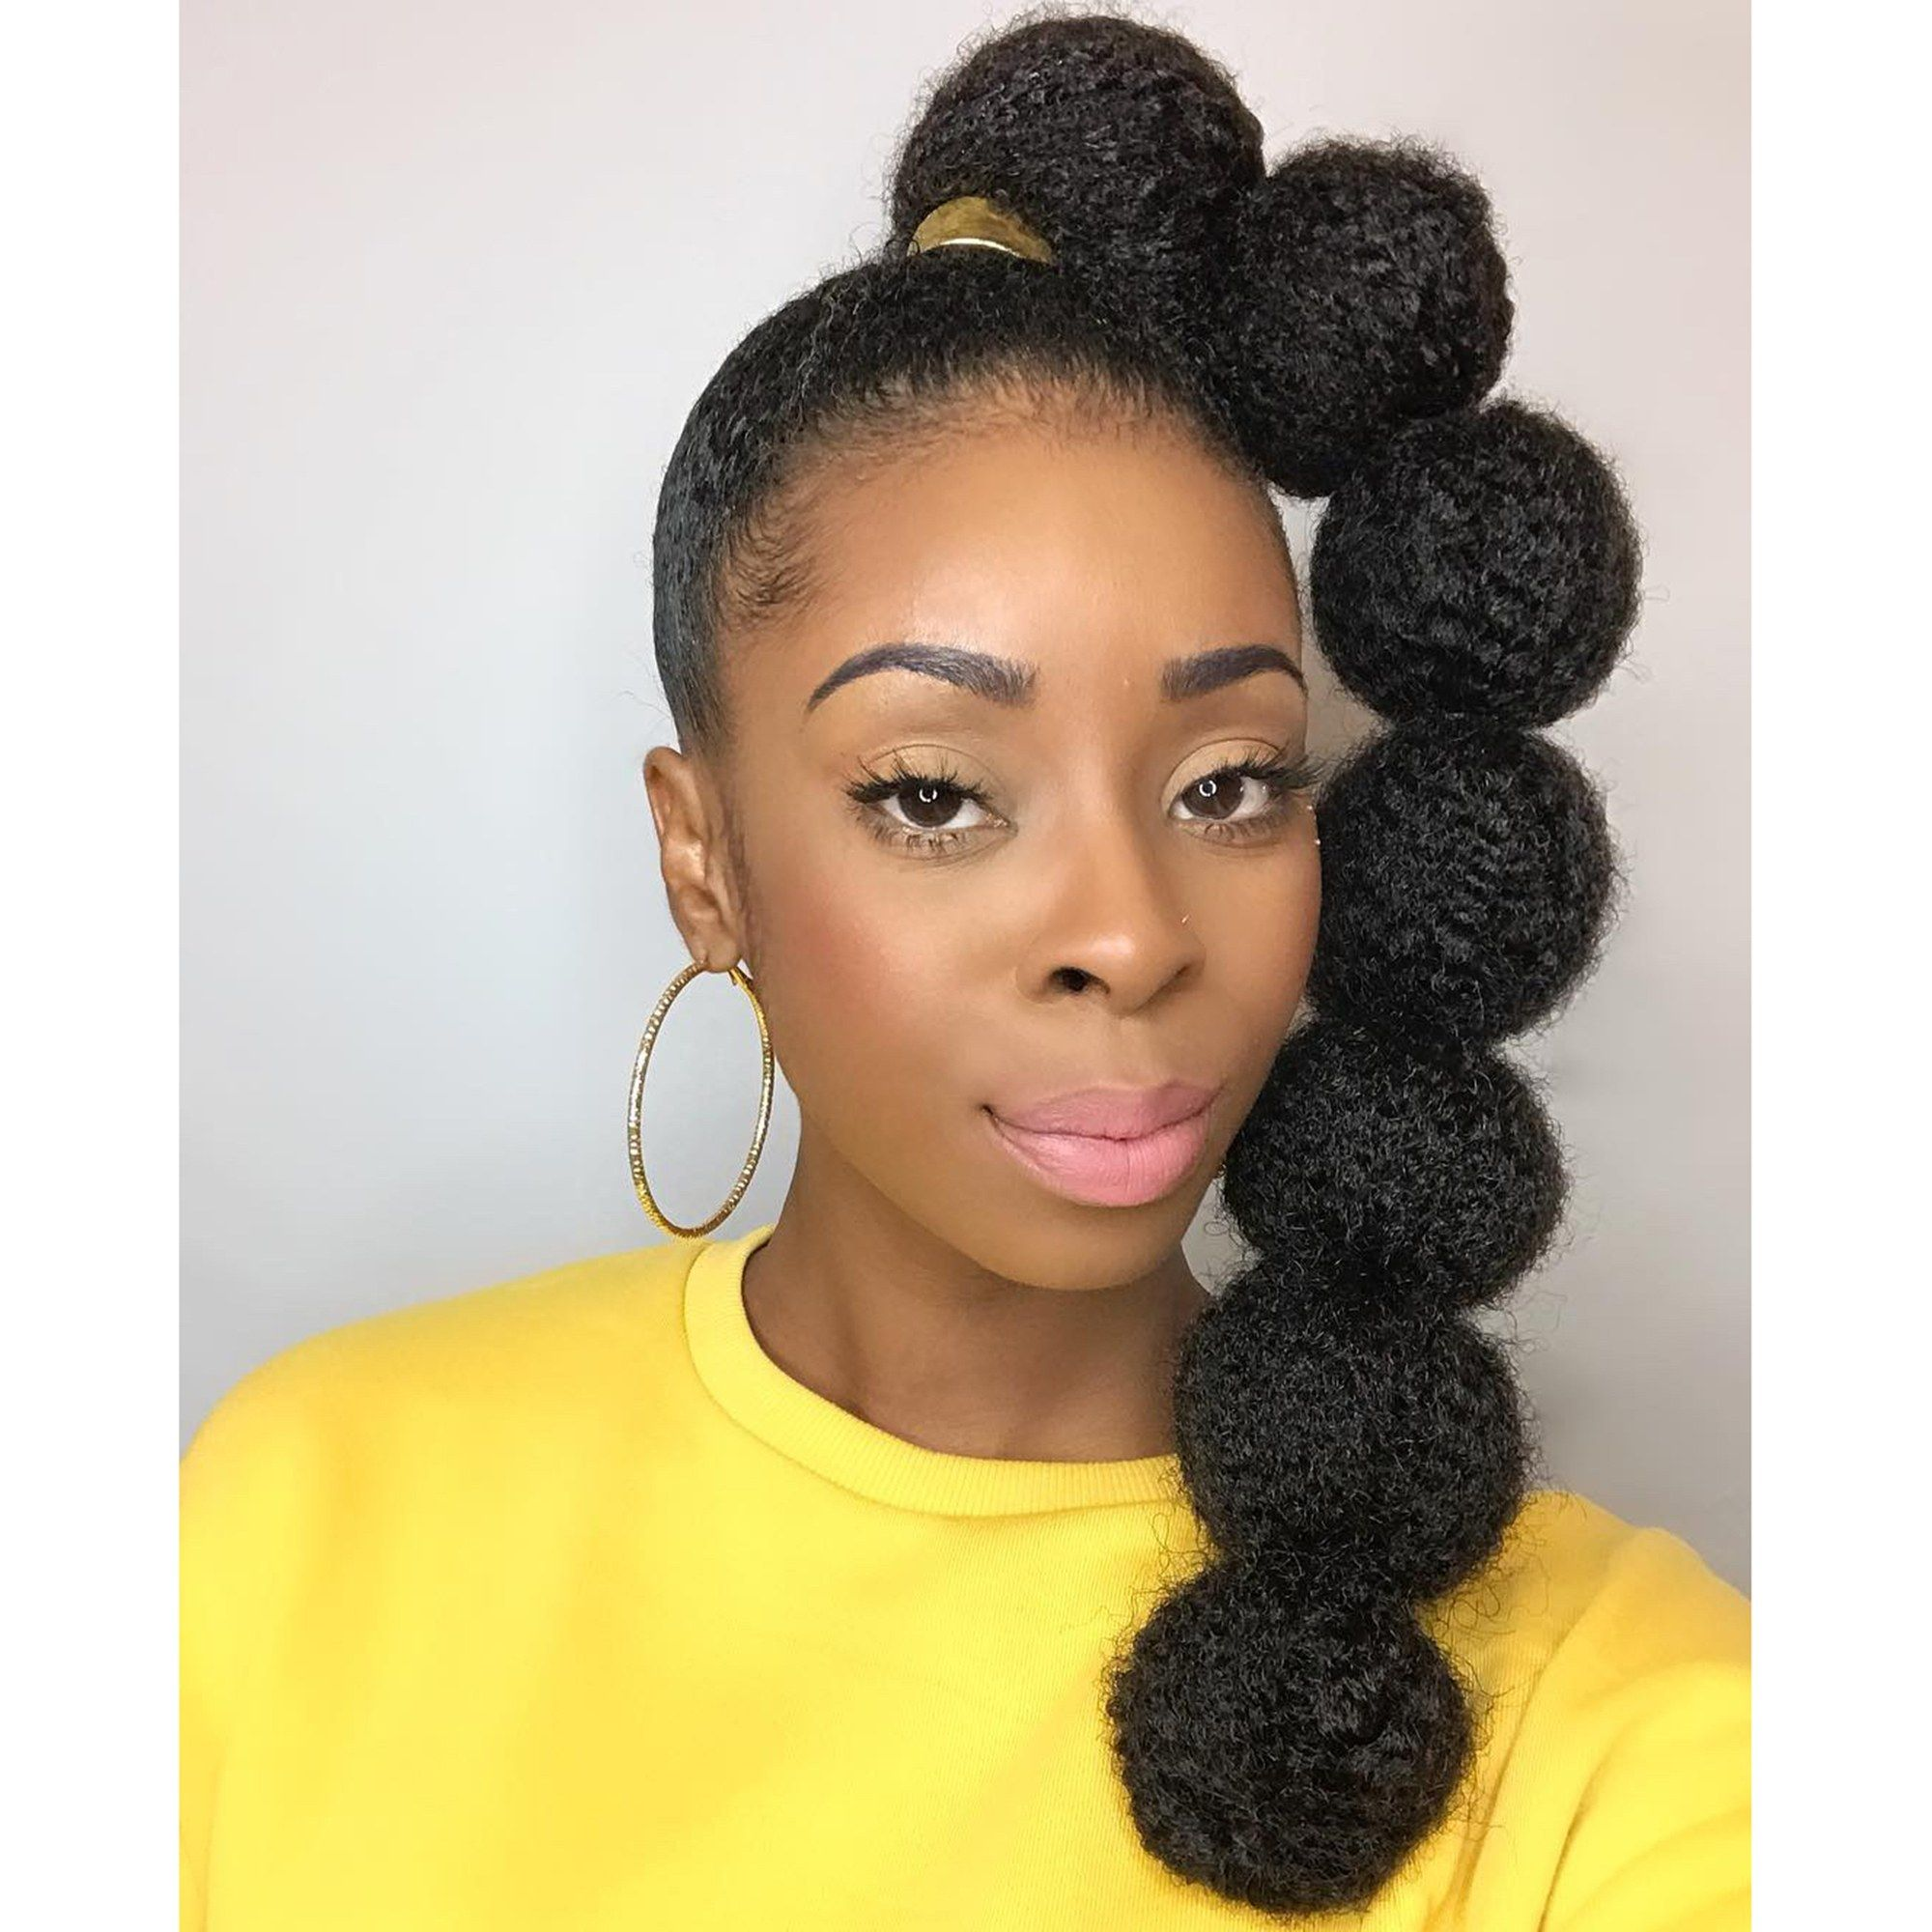 Afro Puff Bubble Ponytails Are Trending On Instagram High Ponytail Hairstyles Natural Hair Styles Bubble Ponytail